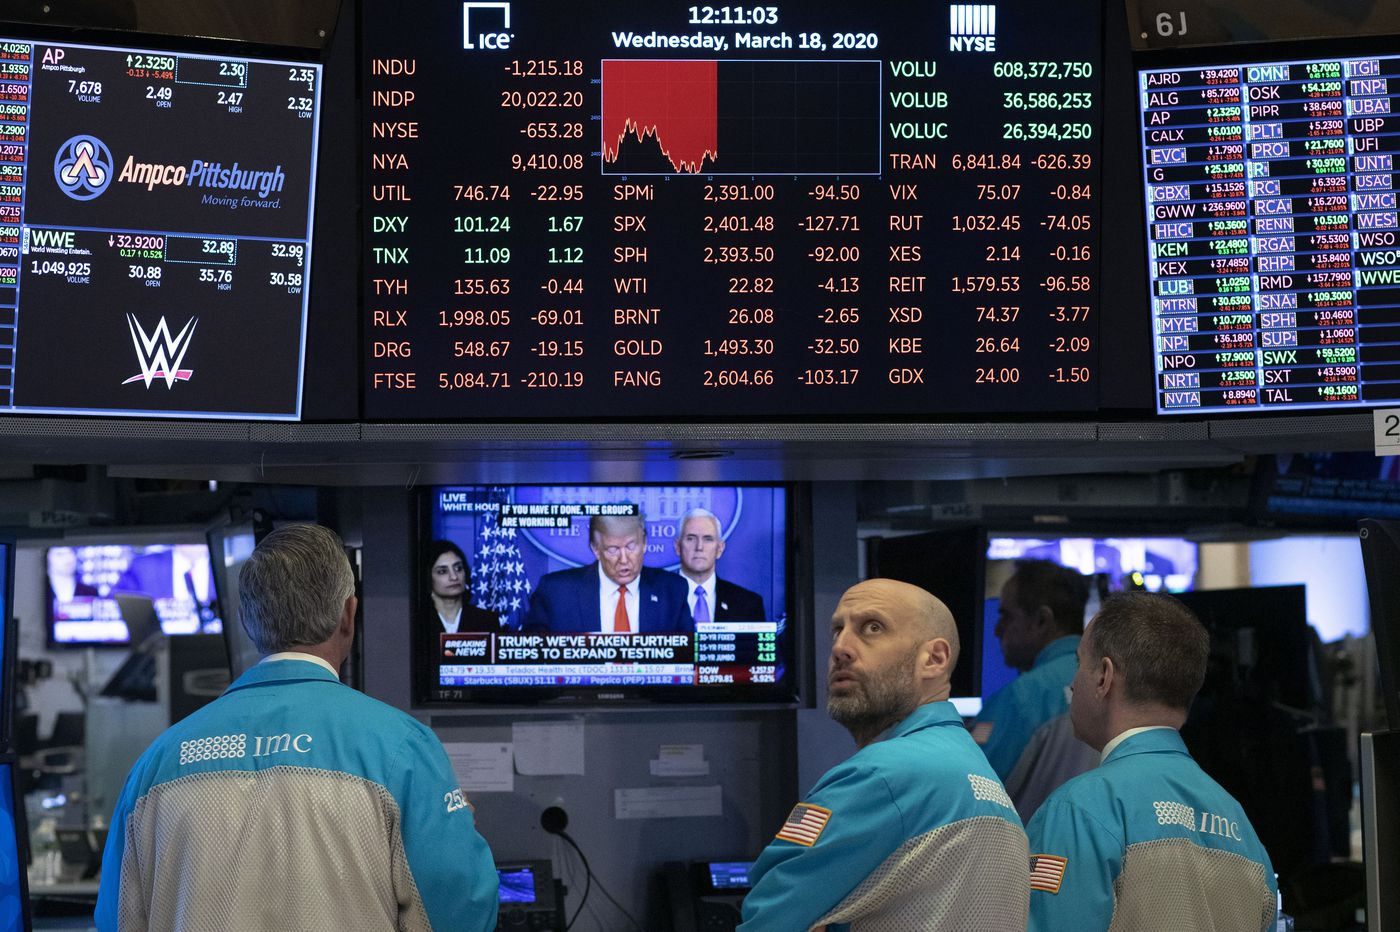 Dow loses 1,300 as 'Trump bump' fades, coronavirus recession fears take hold